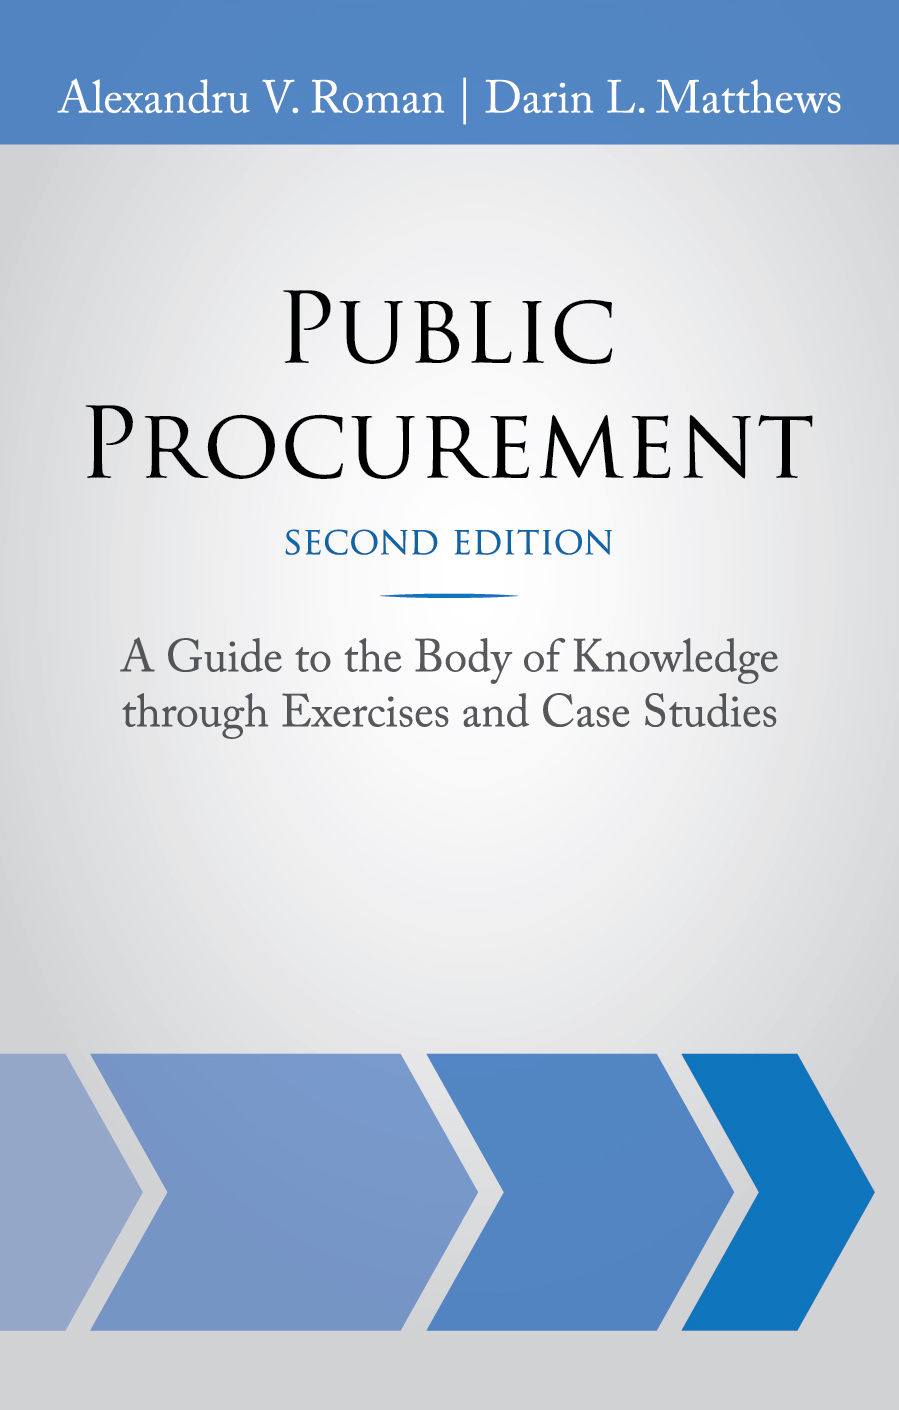 Public Procurement (Second Edition) - Roman, Matthews